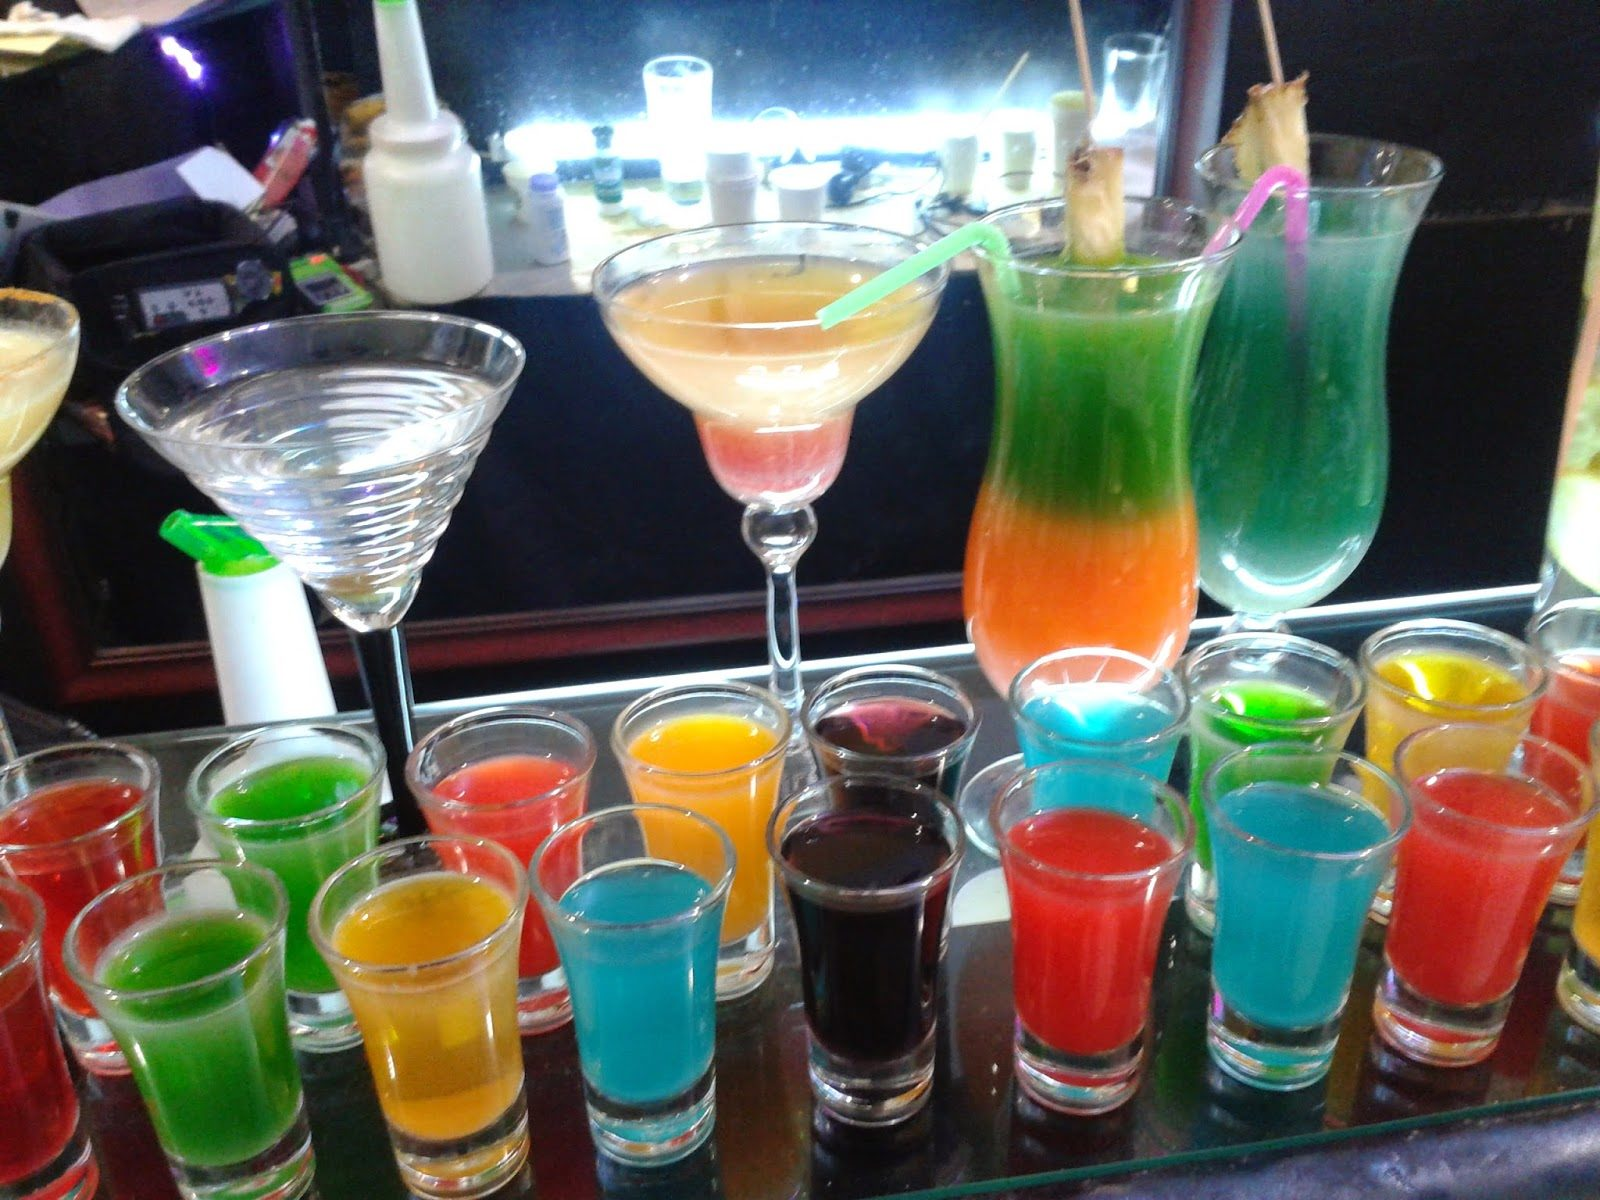 monopoly themed drinks